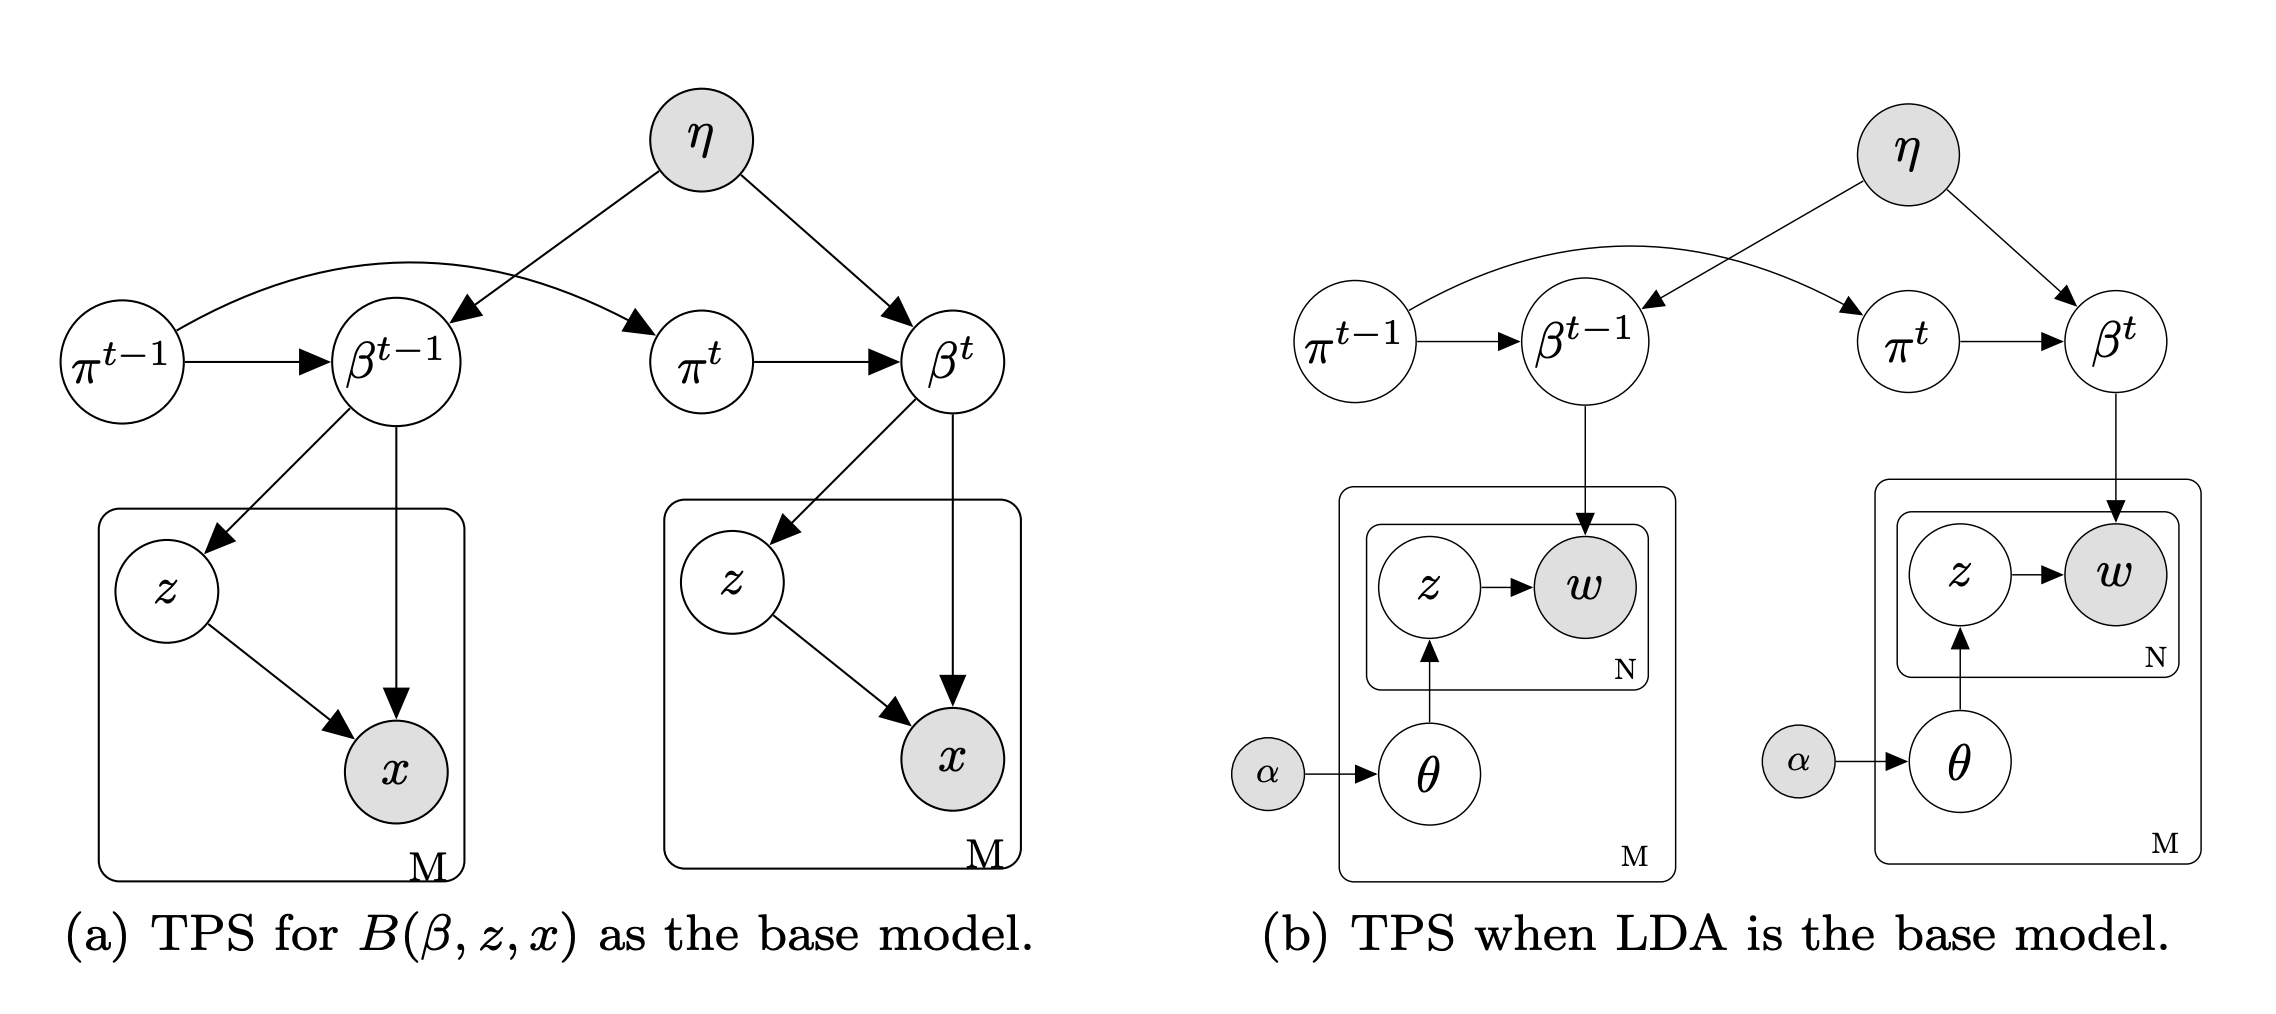 Dynamic transformation of prior knowledge into Bayesian models for data streams